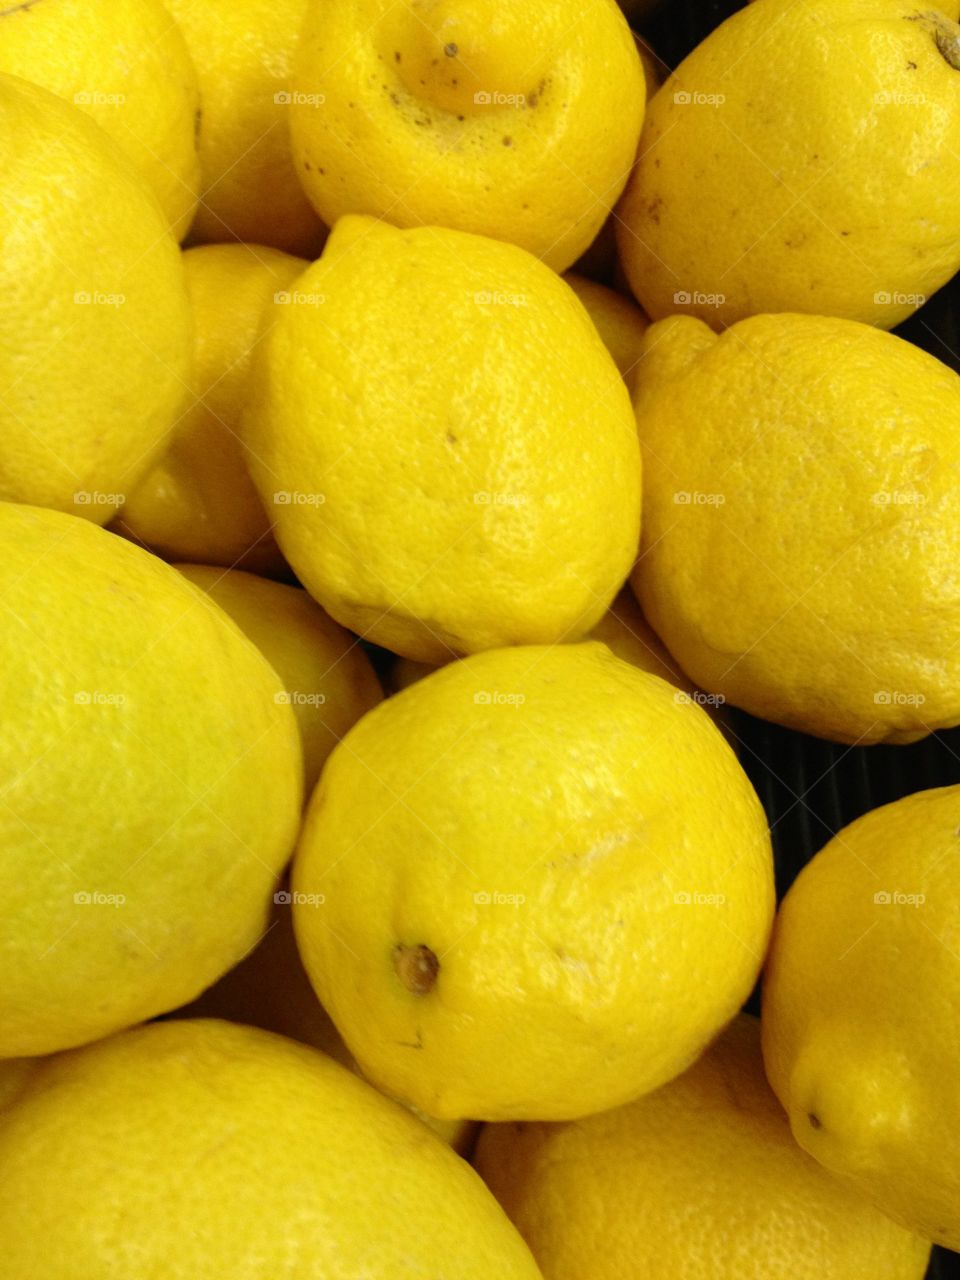 Life will give you lemons in a pile.